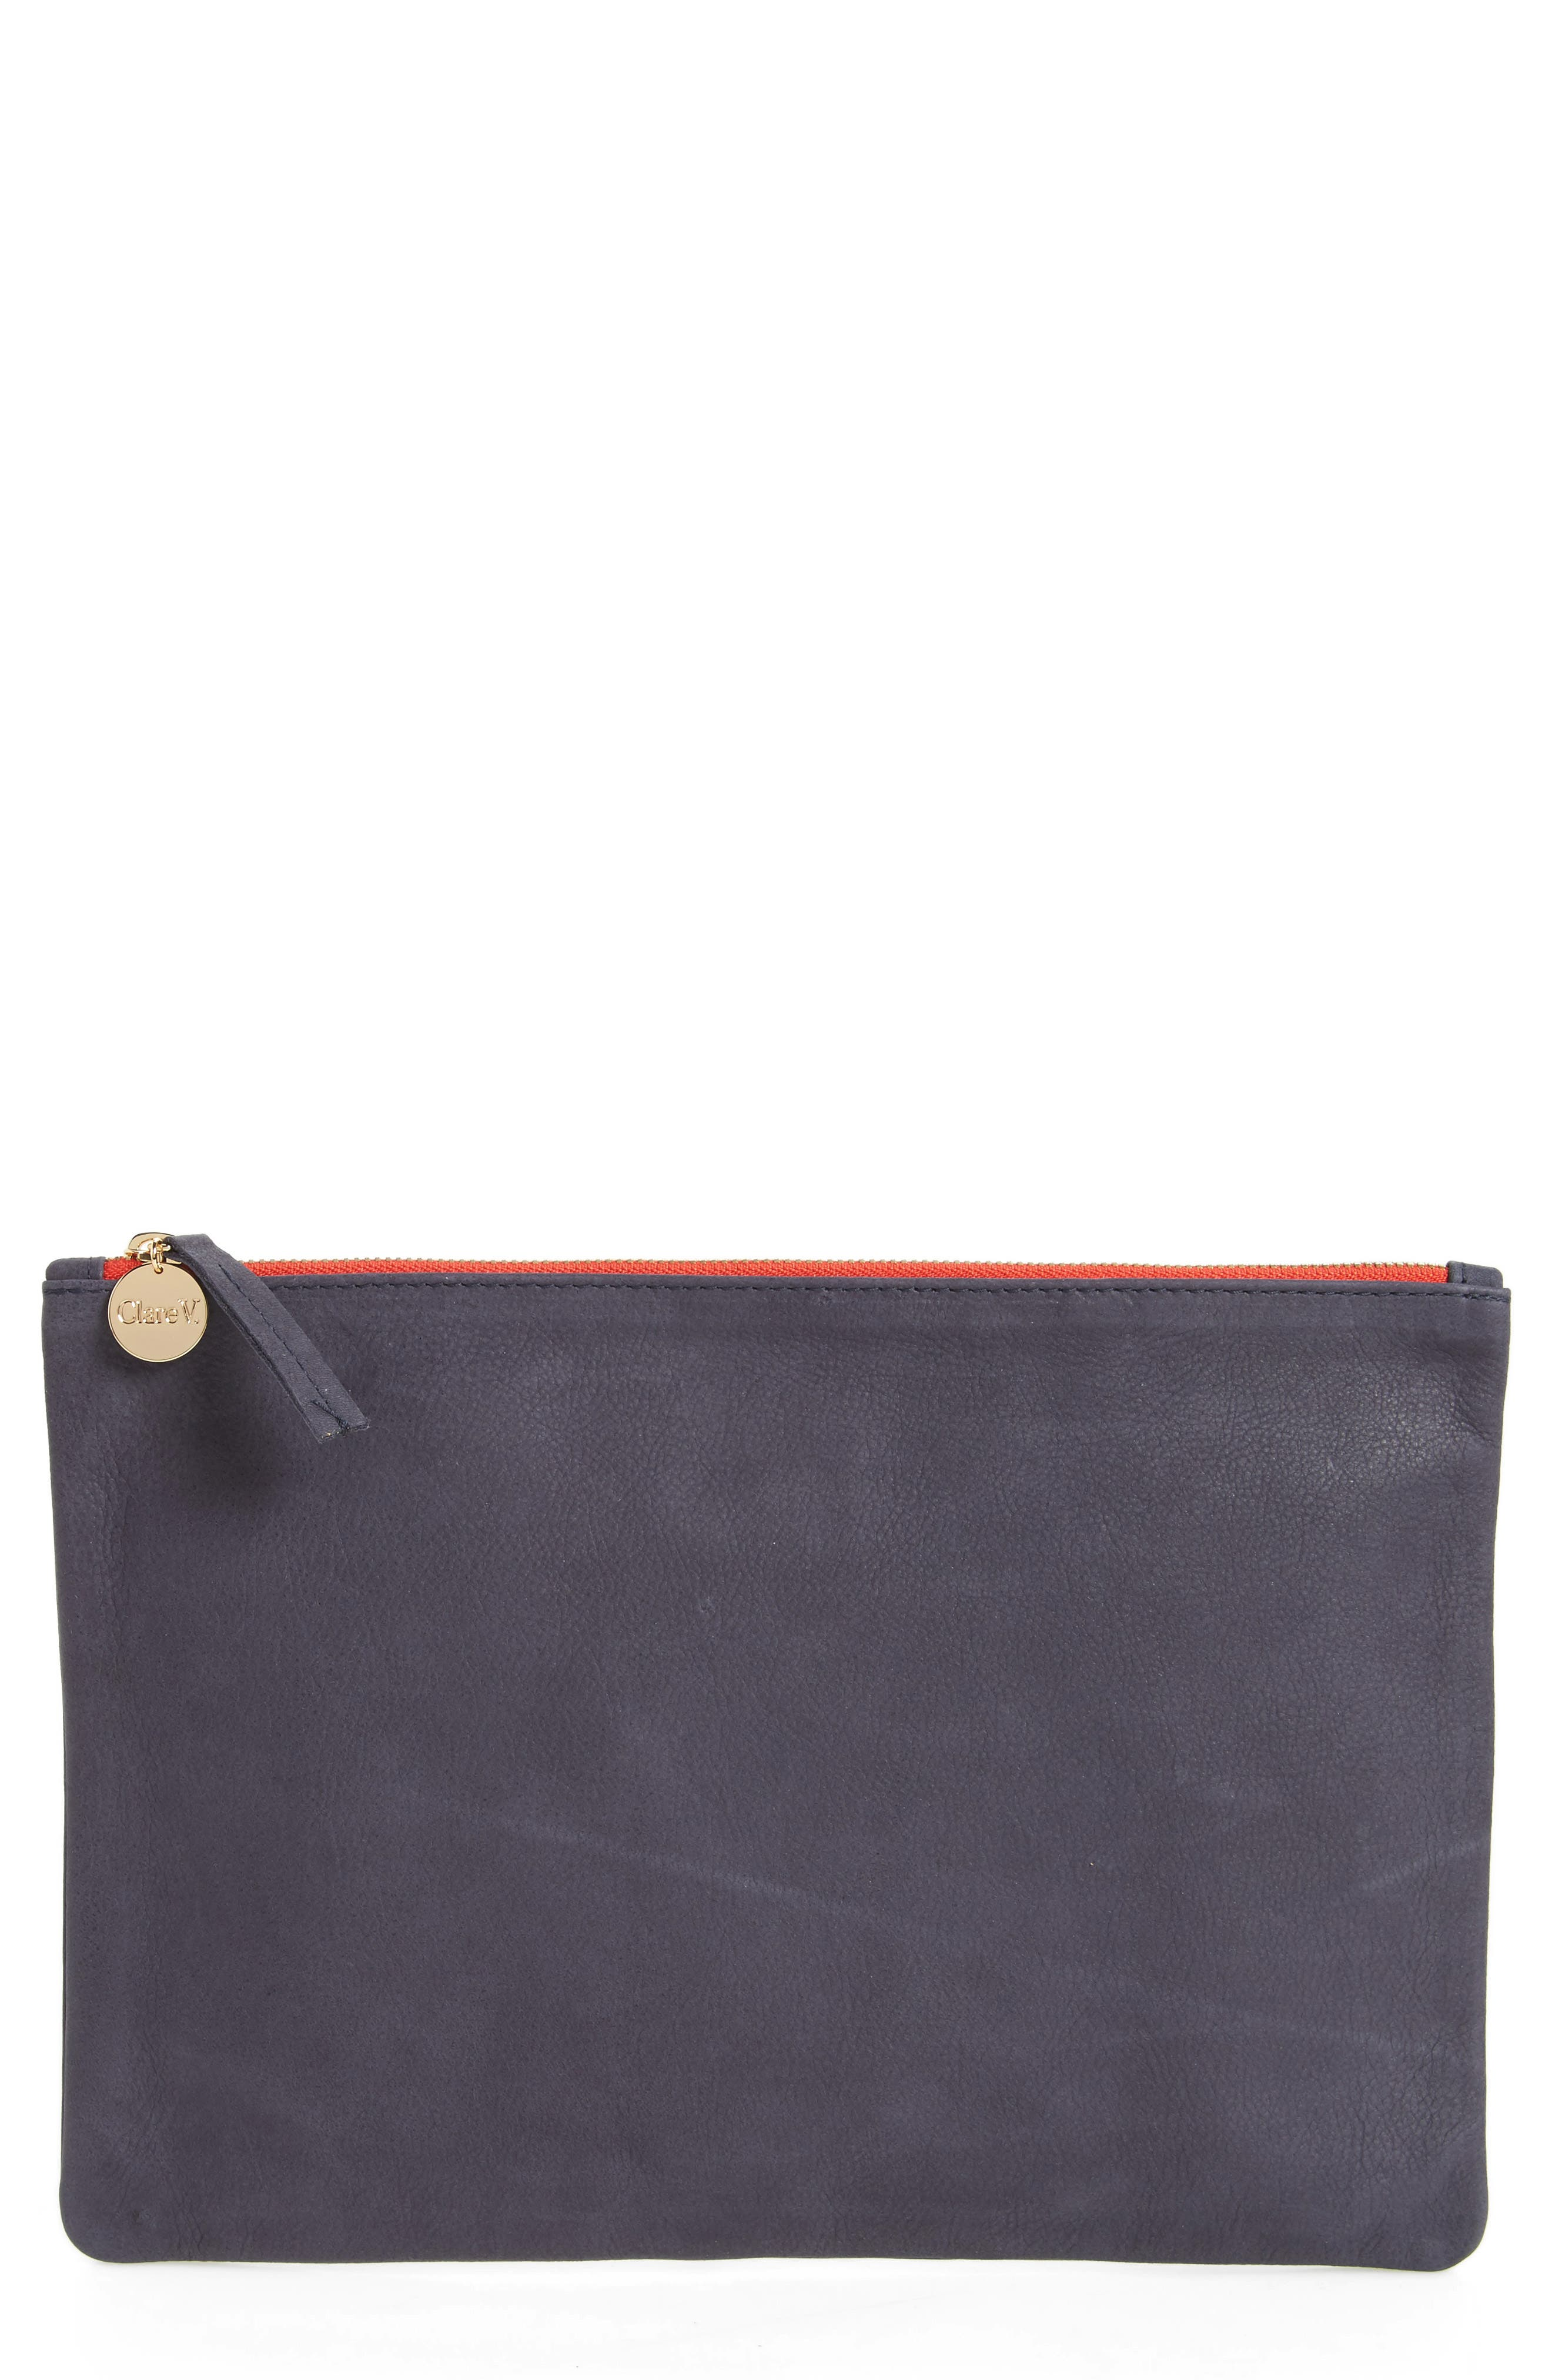 Clare V. Nubuck Leather Clutch